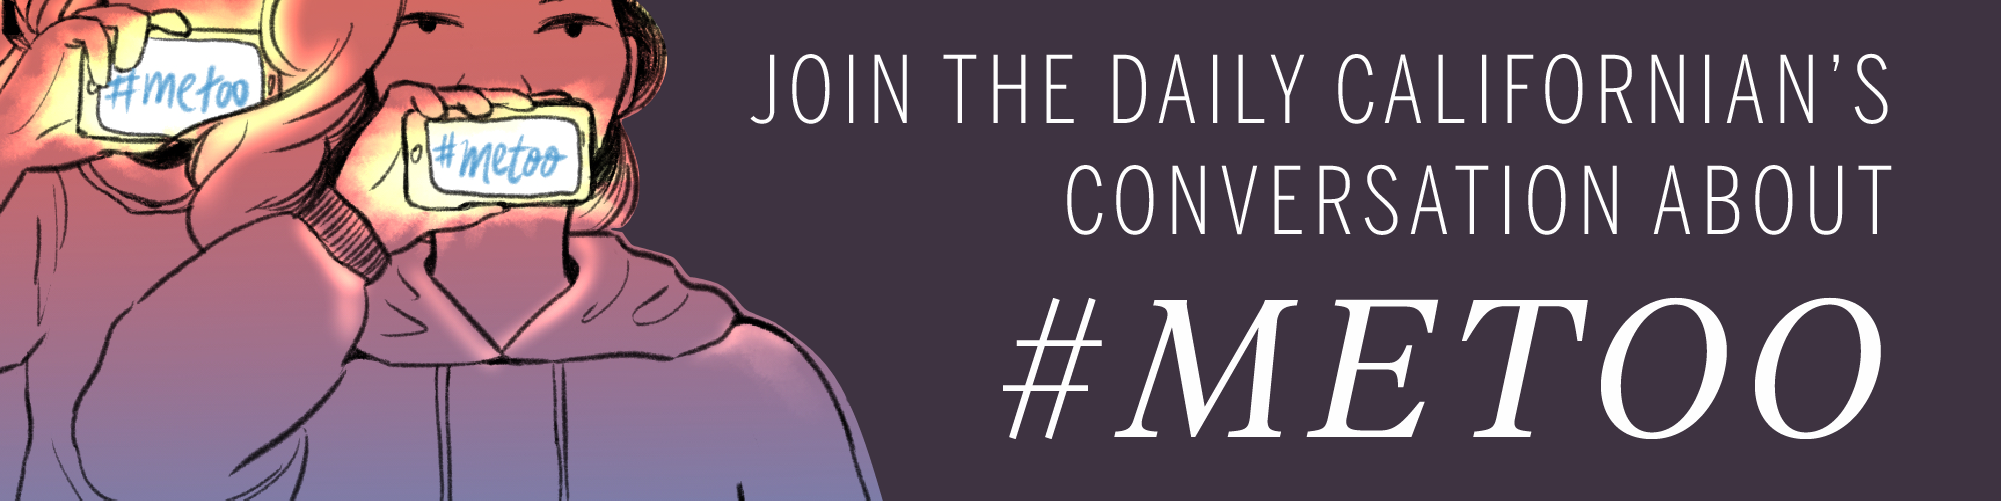 Join The Daily Californian's conversation about #MeToo